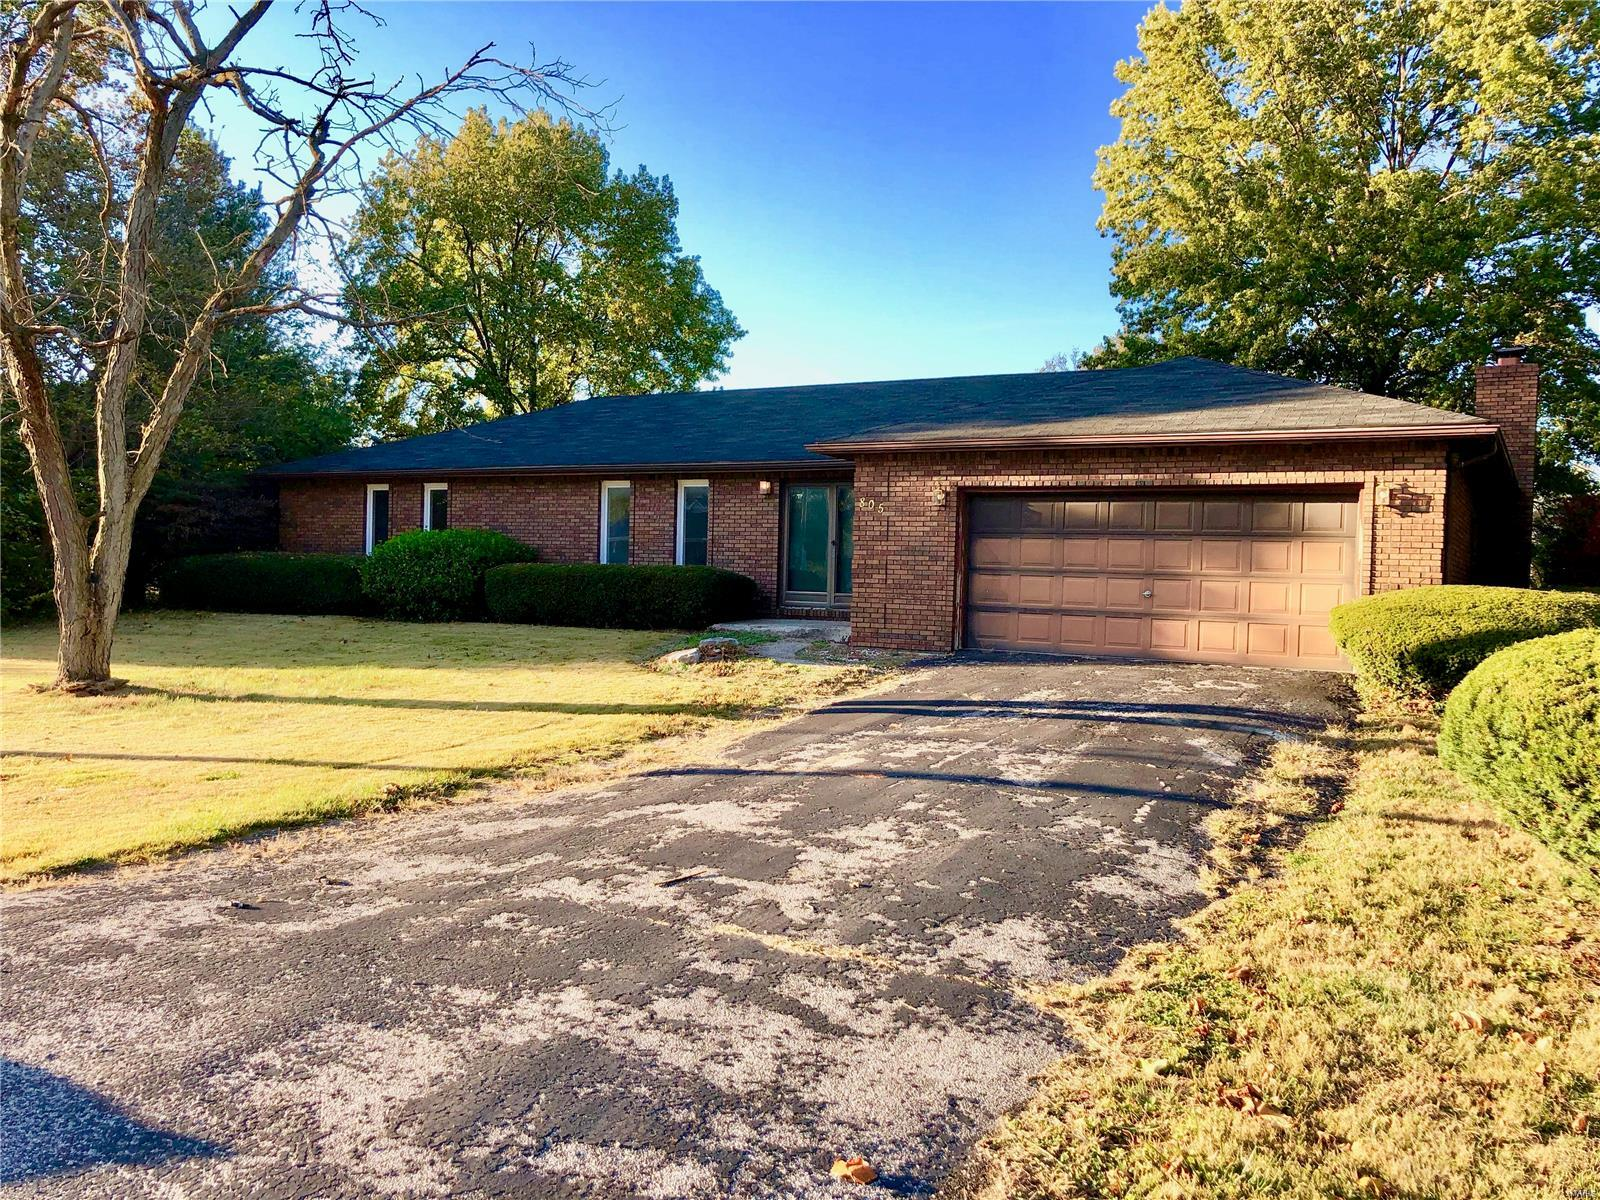 805 W Warren Property Photo - Bunker Hill, IL real estate listing